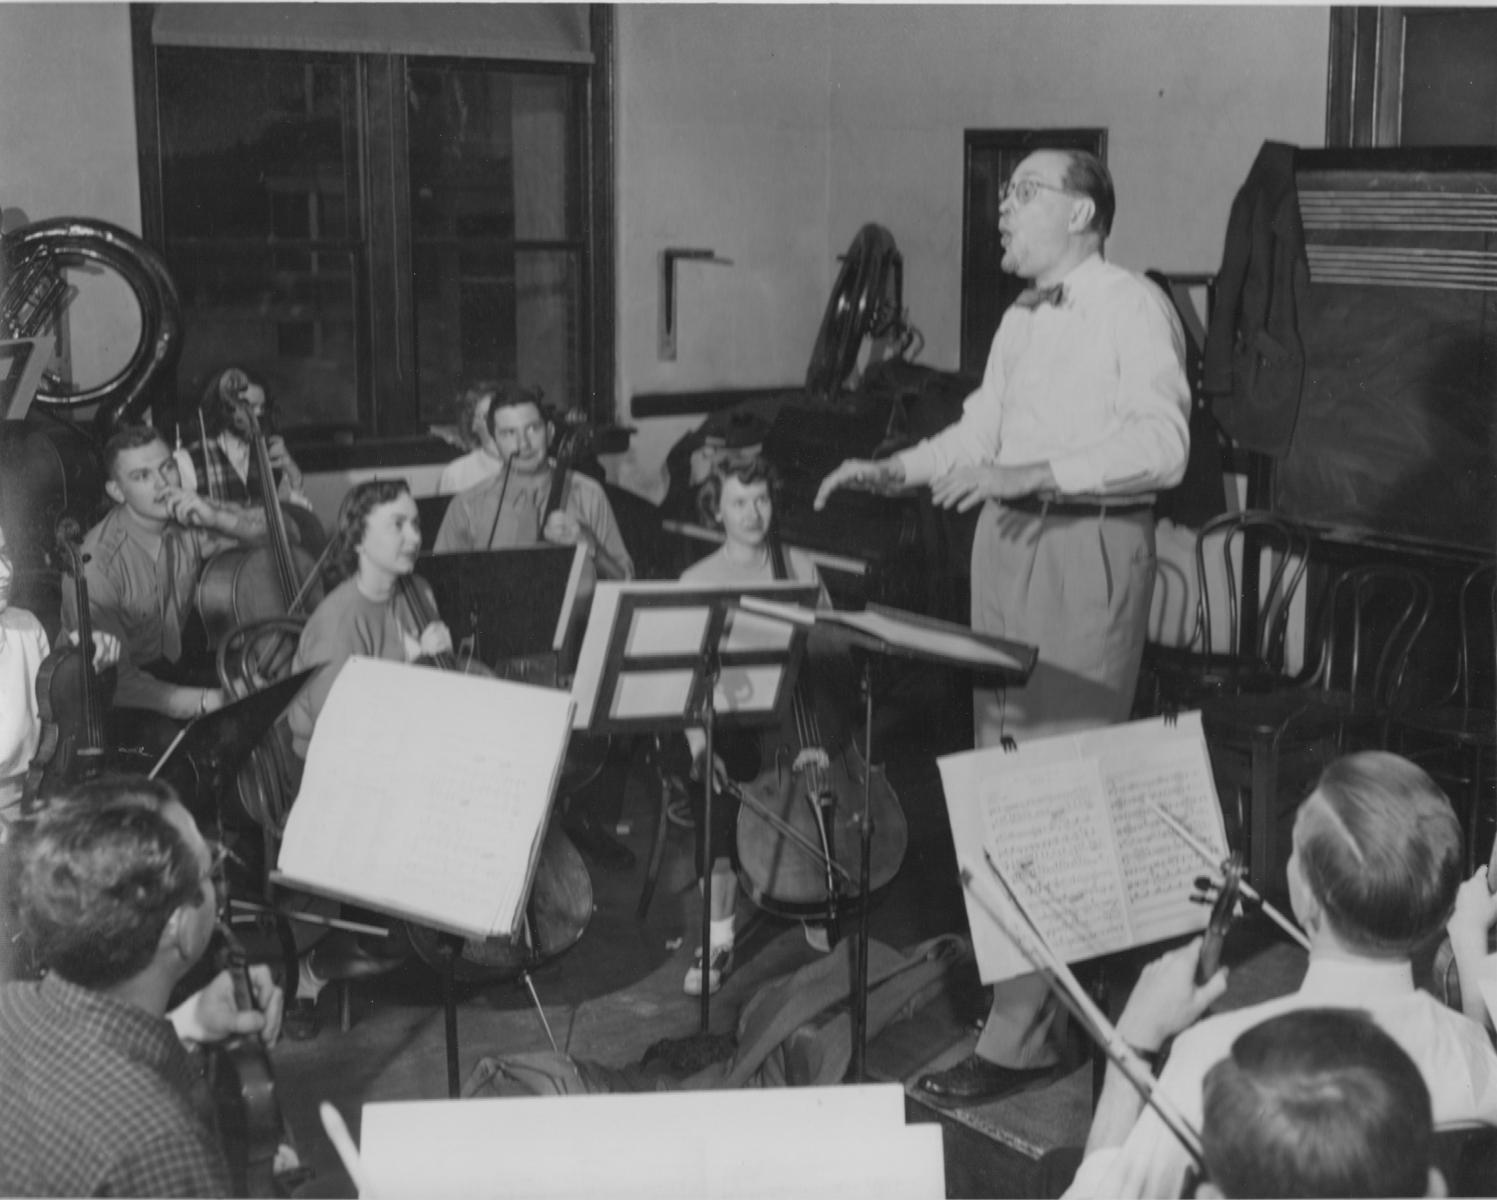 Music classes at the conservatory